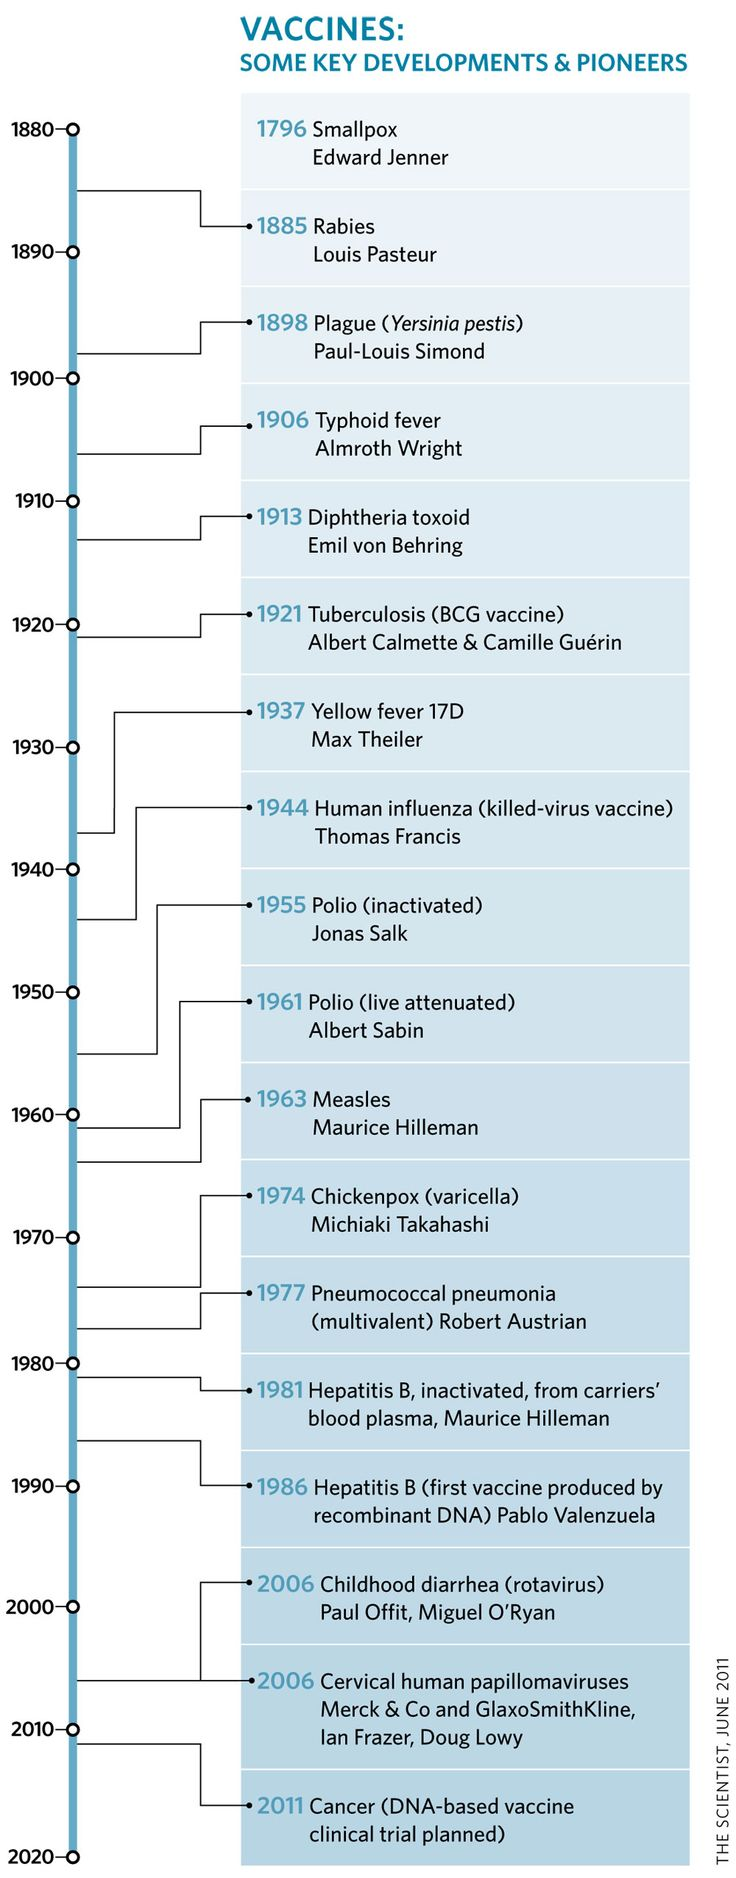 Vaccines Some Key Developments and Pioneers | Visual.ly